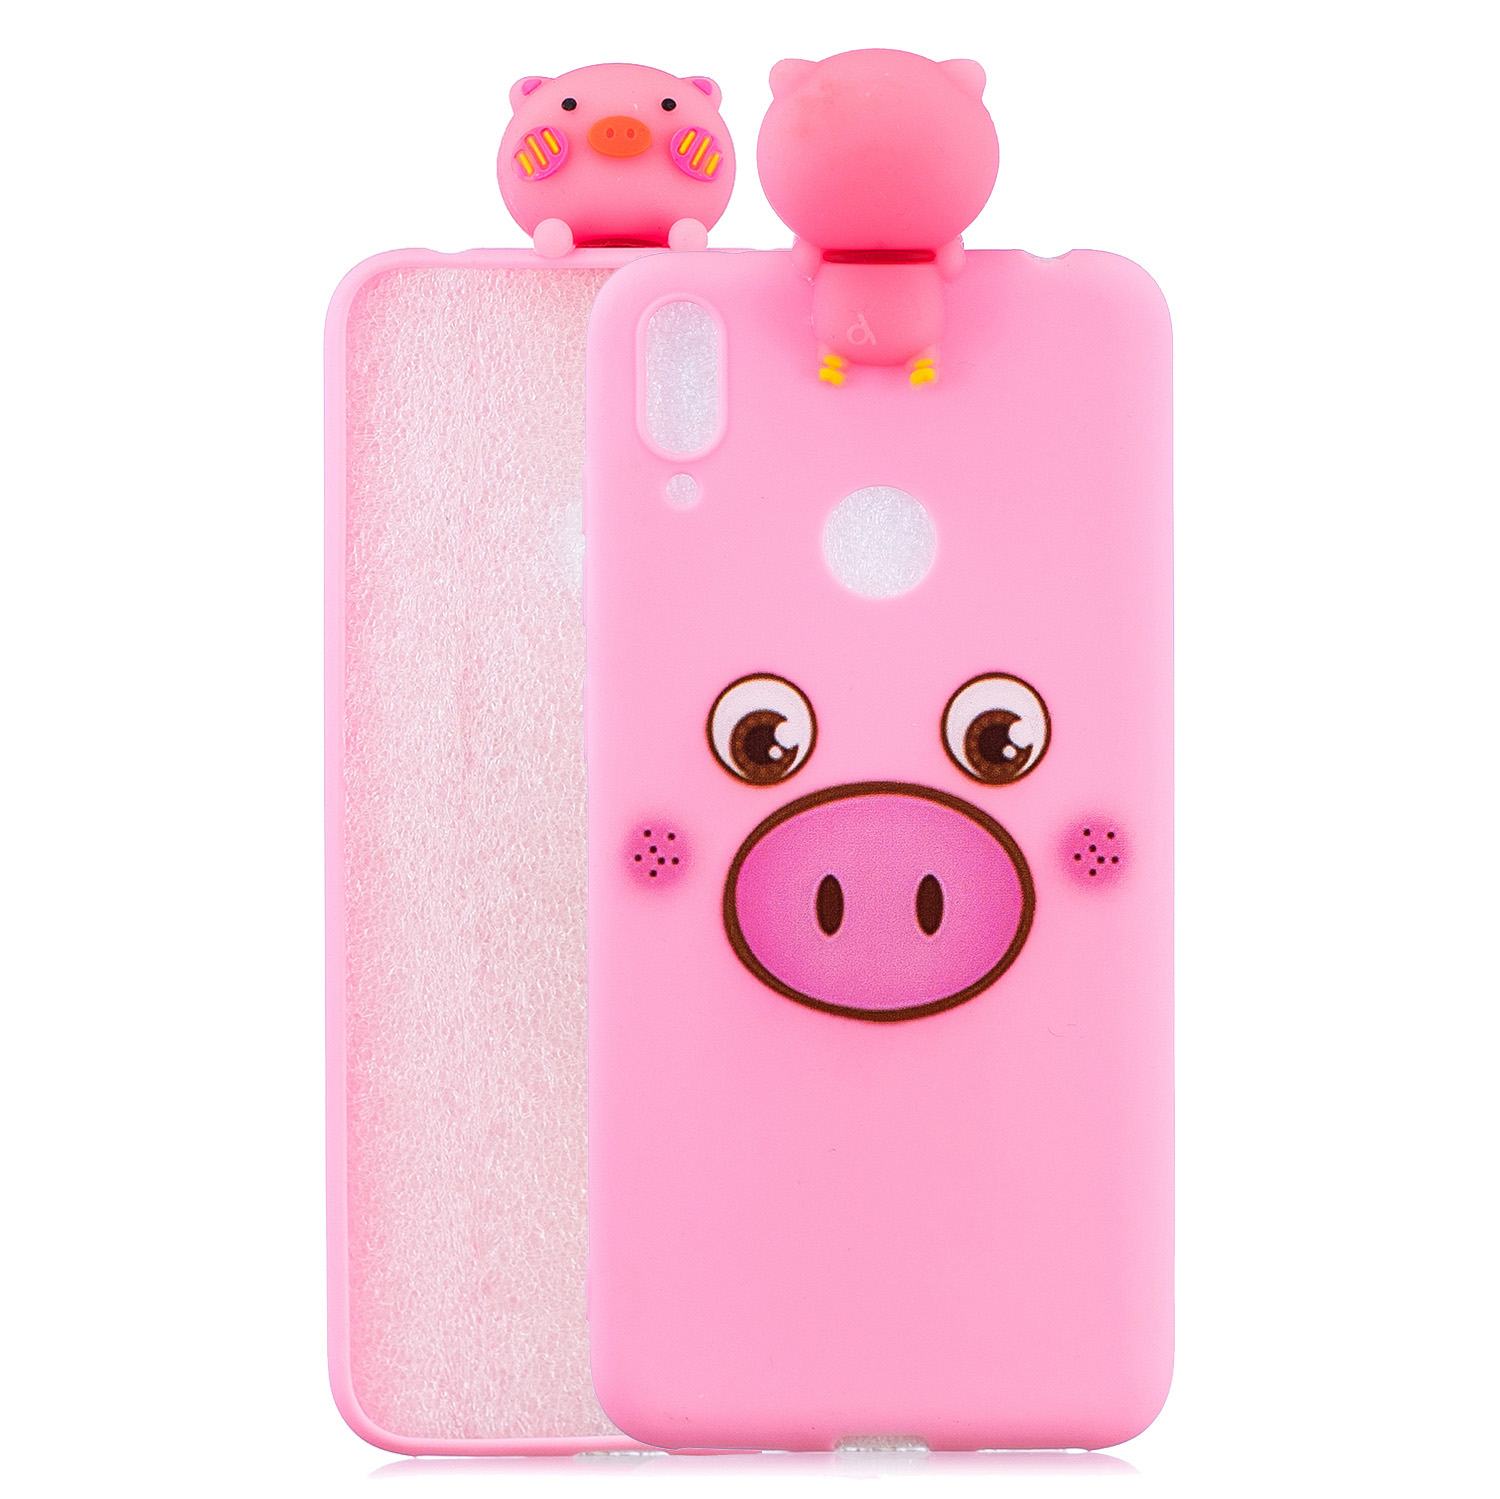 For Huawei Y7 2019 3D Cartoon Lovely Coloured Painted Soft TPU Back Cover Non-slip Shockproof Full Protective Case Small pink pig